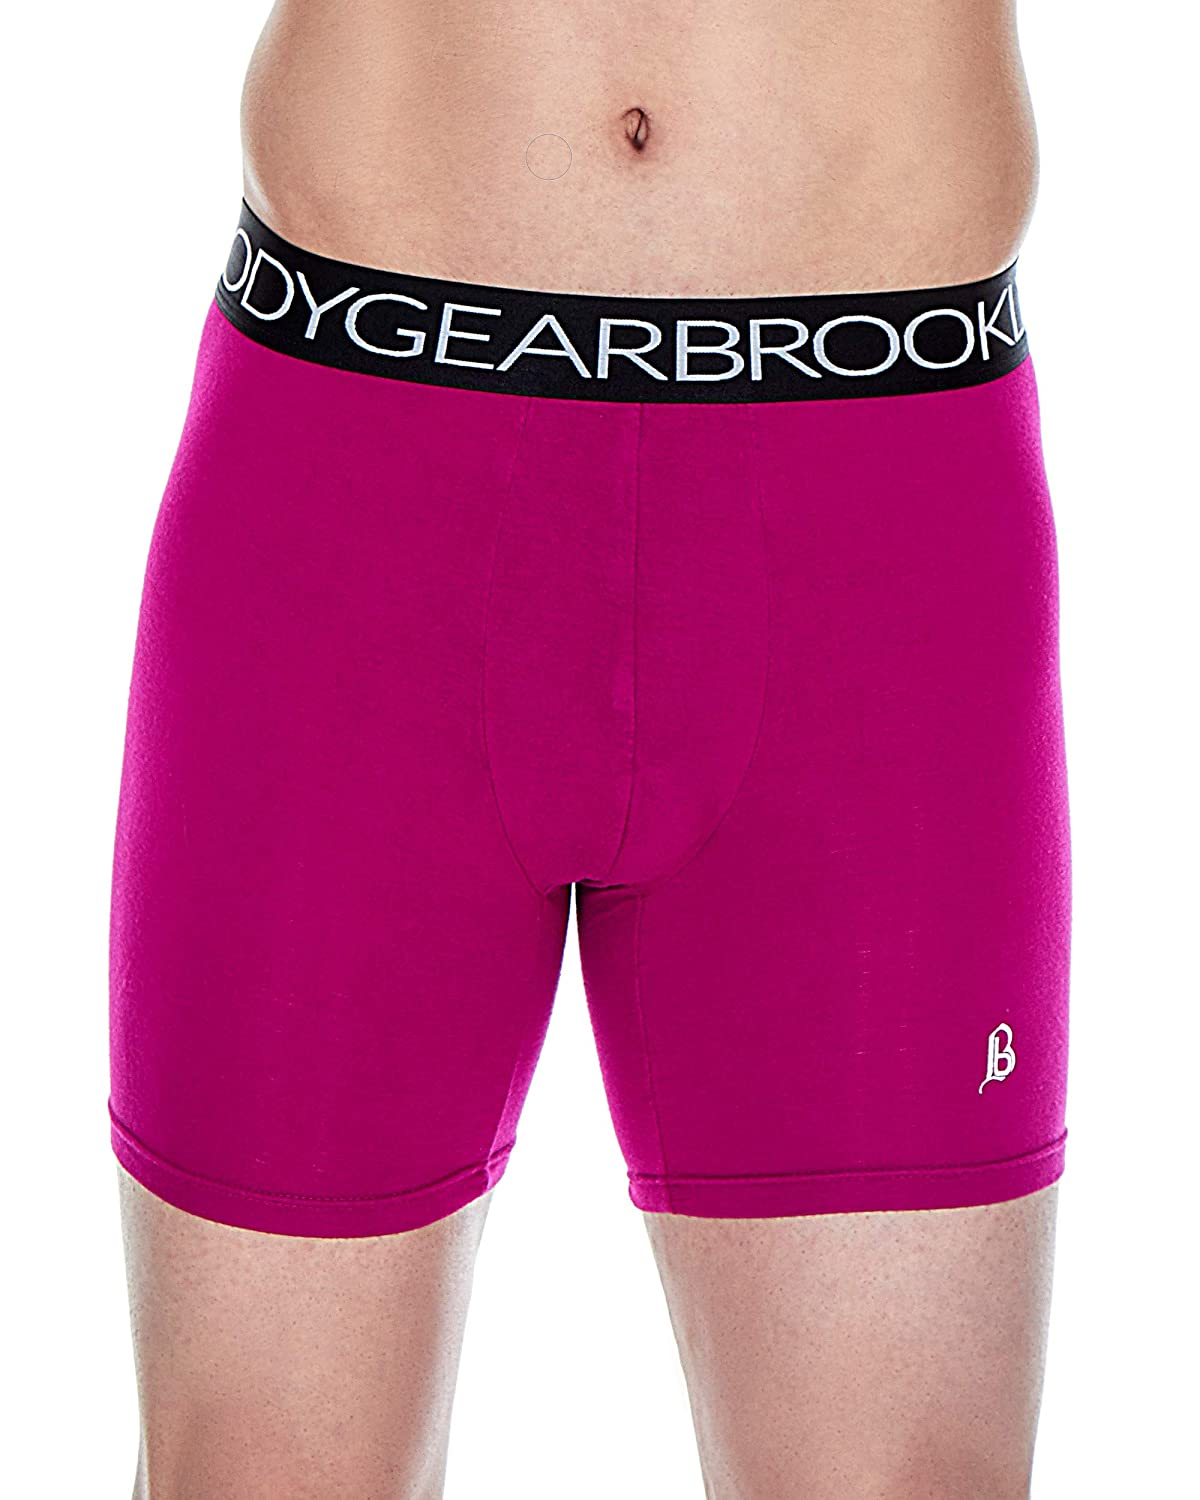 Brooklyn Bodygear Men/'s Ultra-Soft Stretch Signature Boxer Briefs